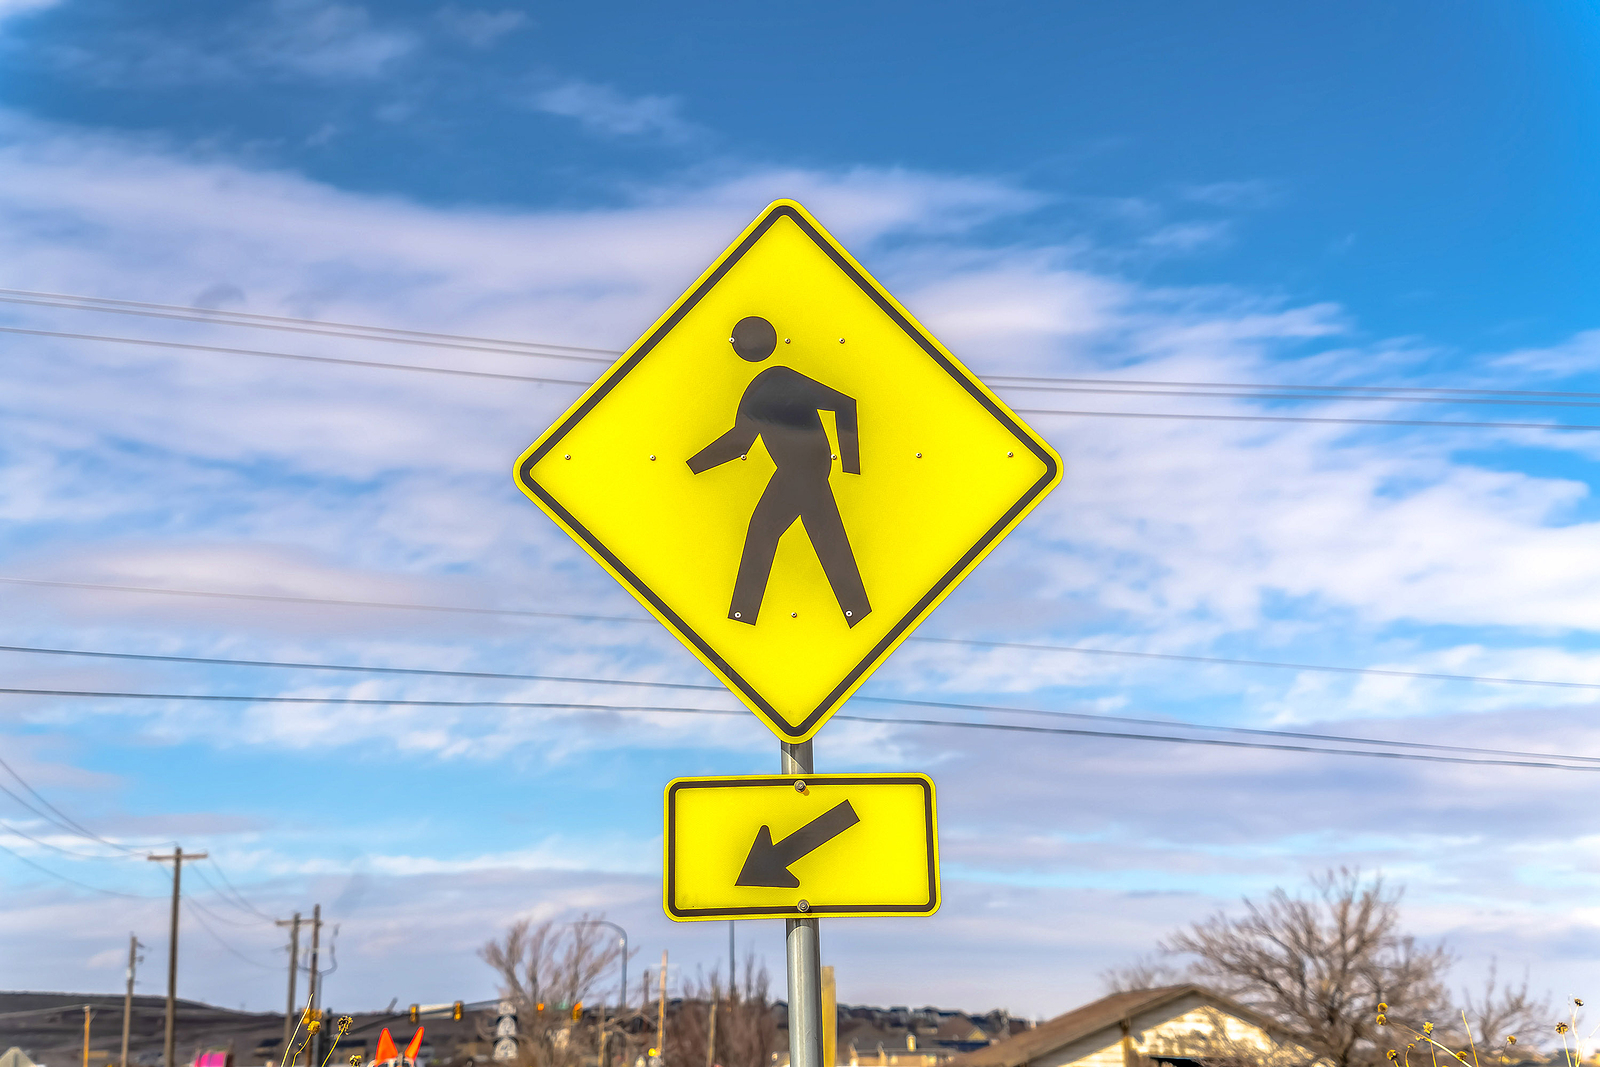 Yellow-Pedestrian-Crossing-And-Arrow-Sign-with-Cloudy-Blue-Sky-in-Background